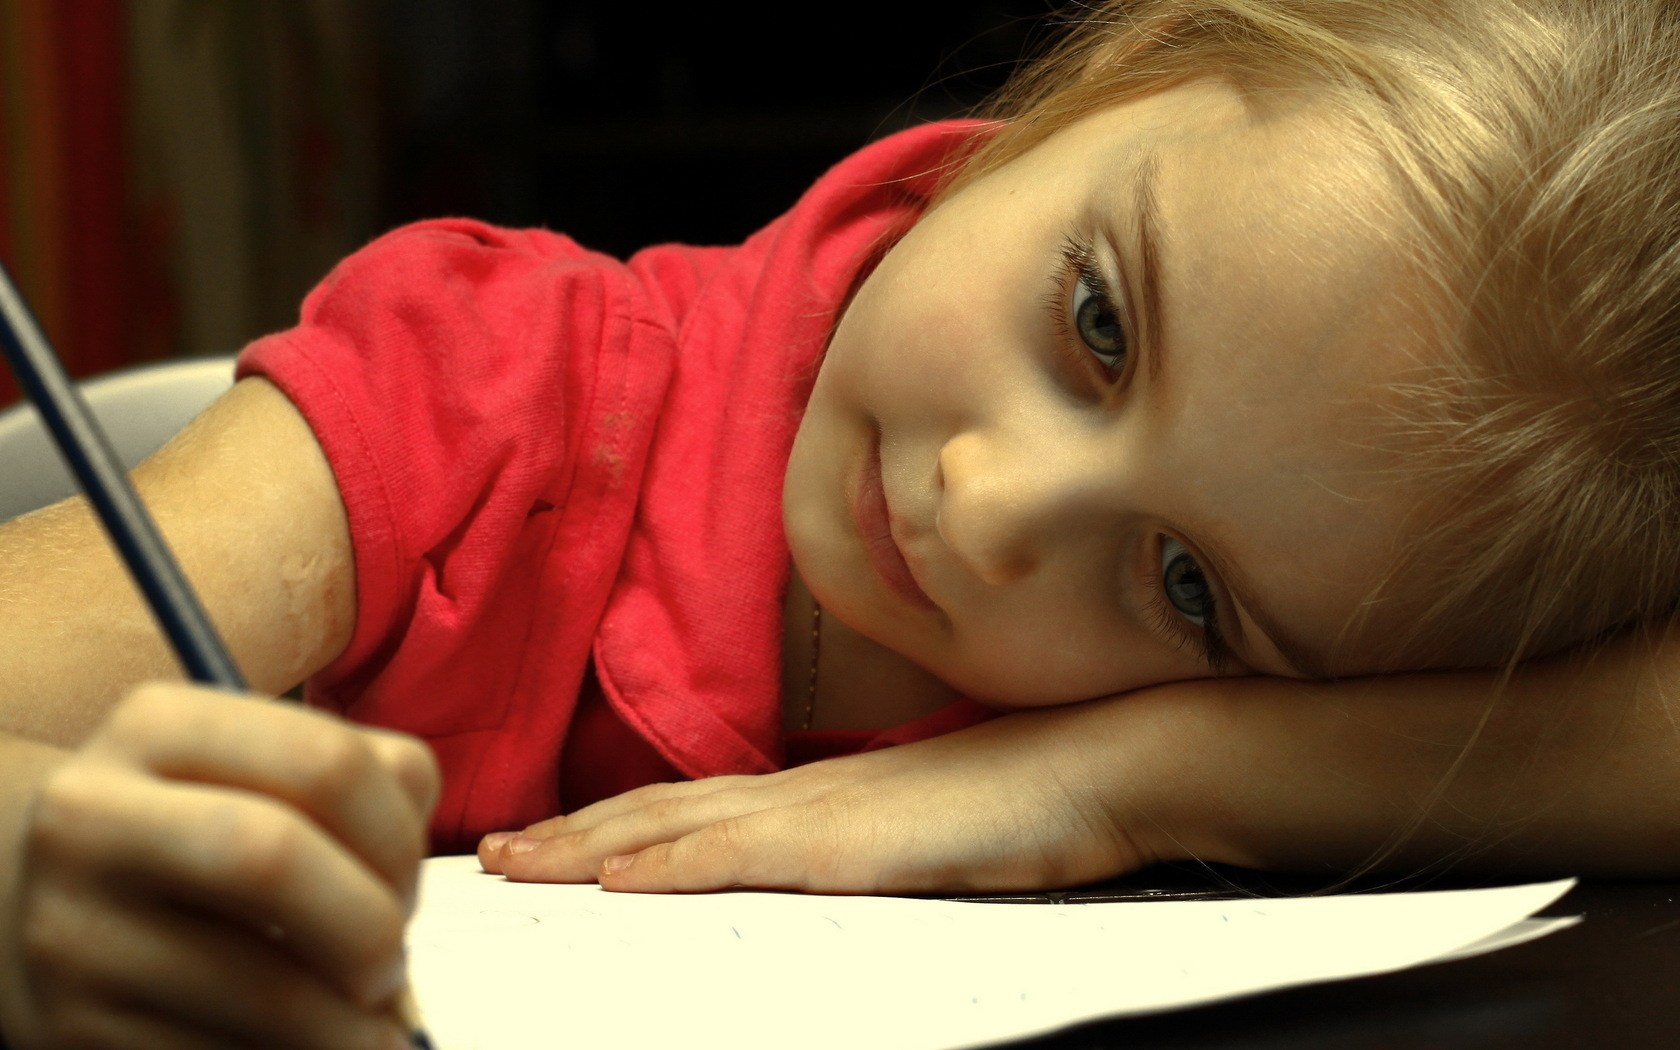 Baby girl with pencil 1680 x 1050 download close